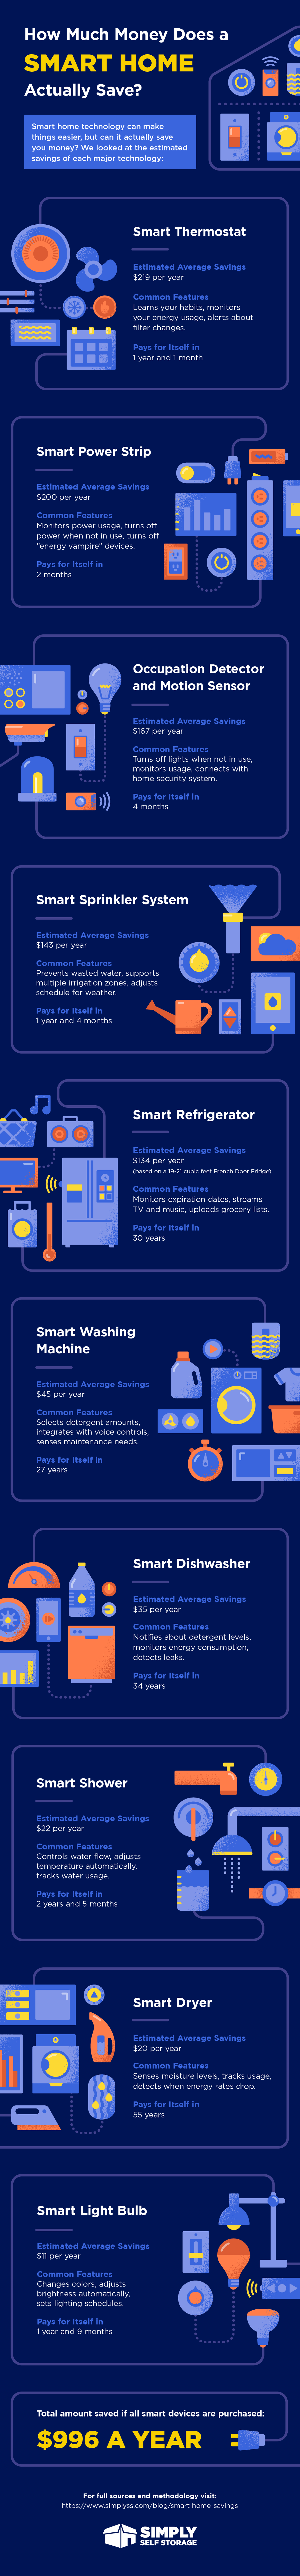 How Much Money Does a Smart Home Save